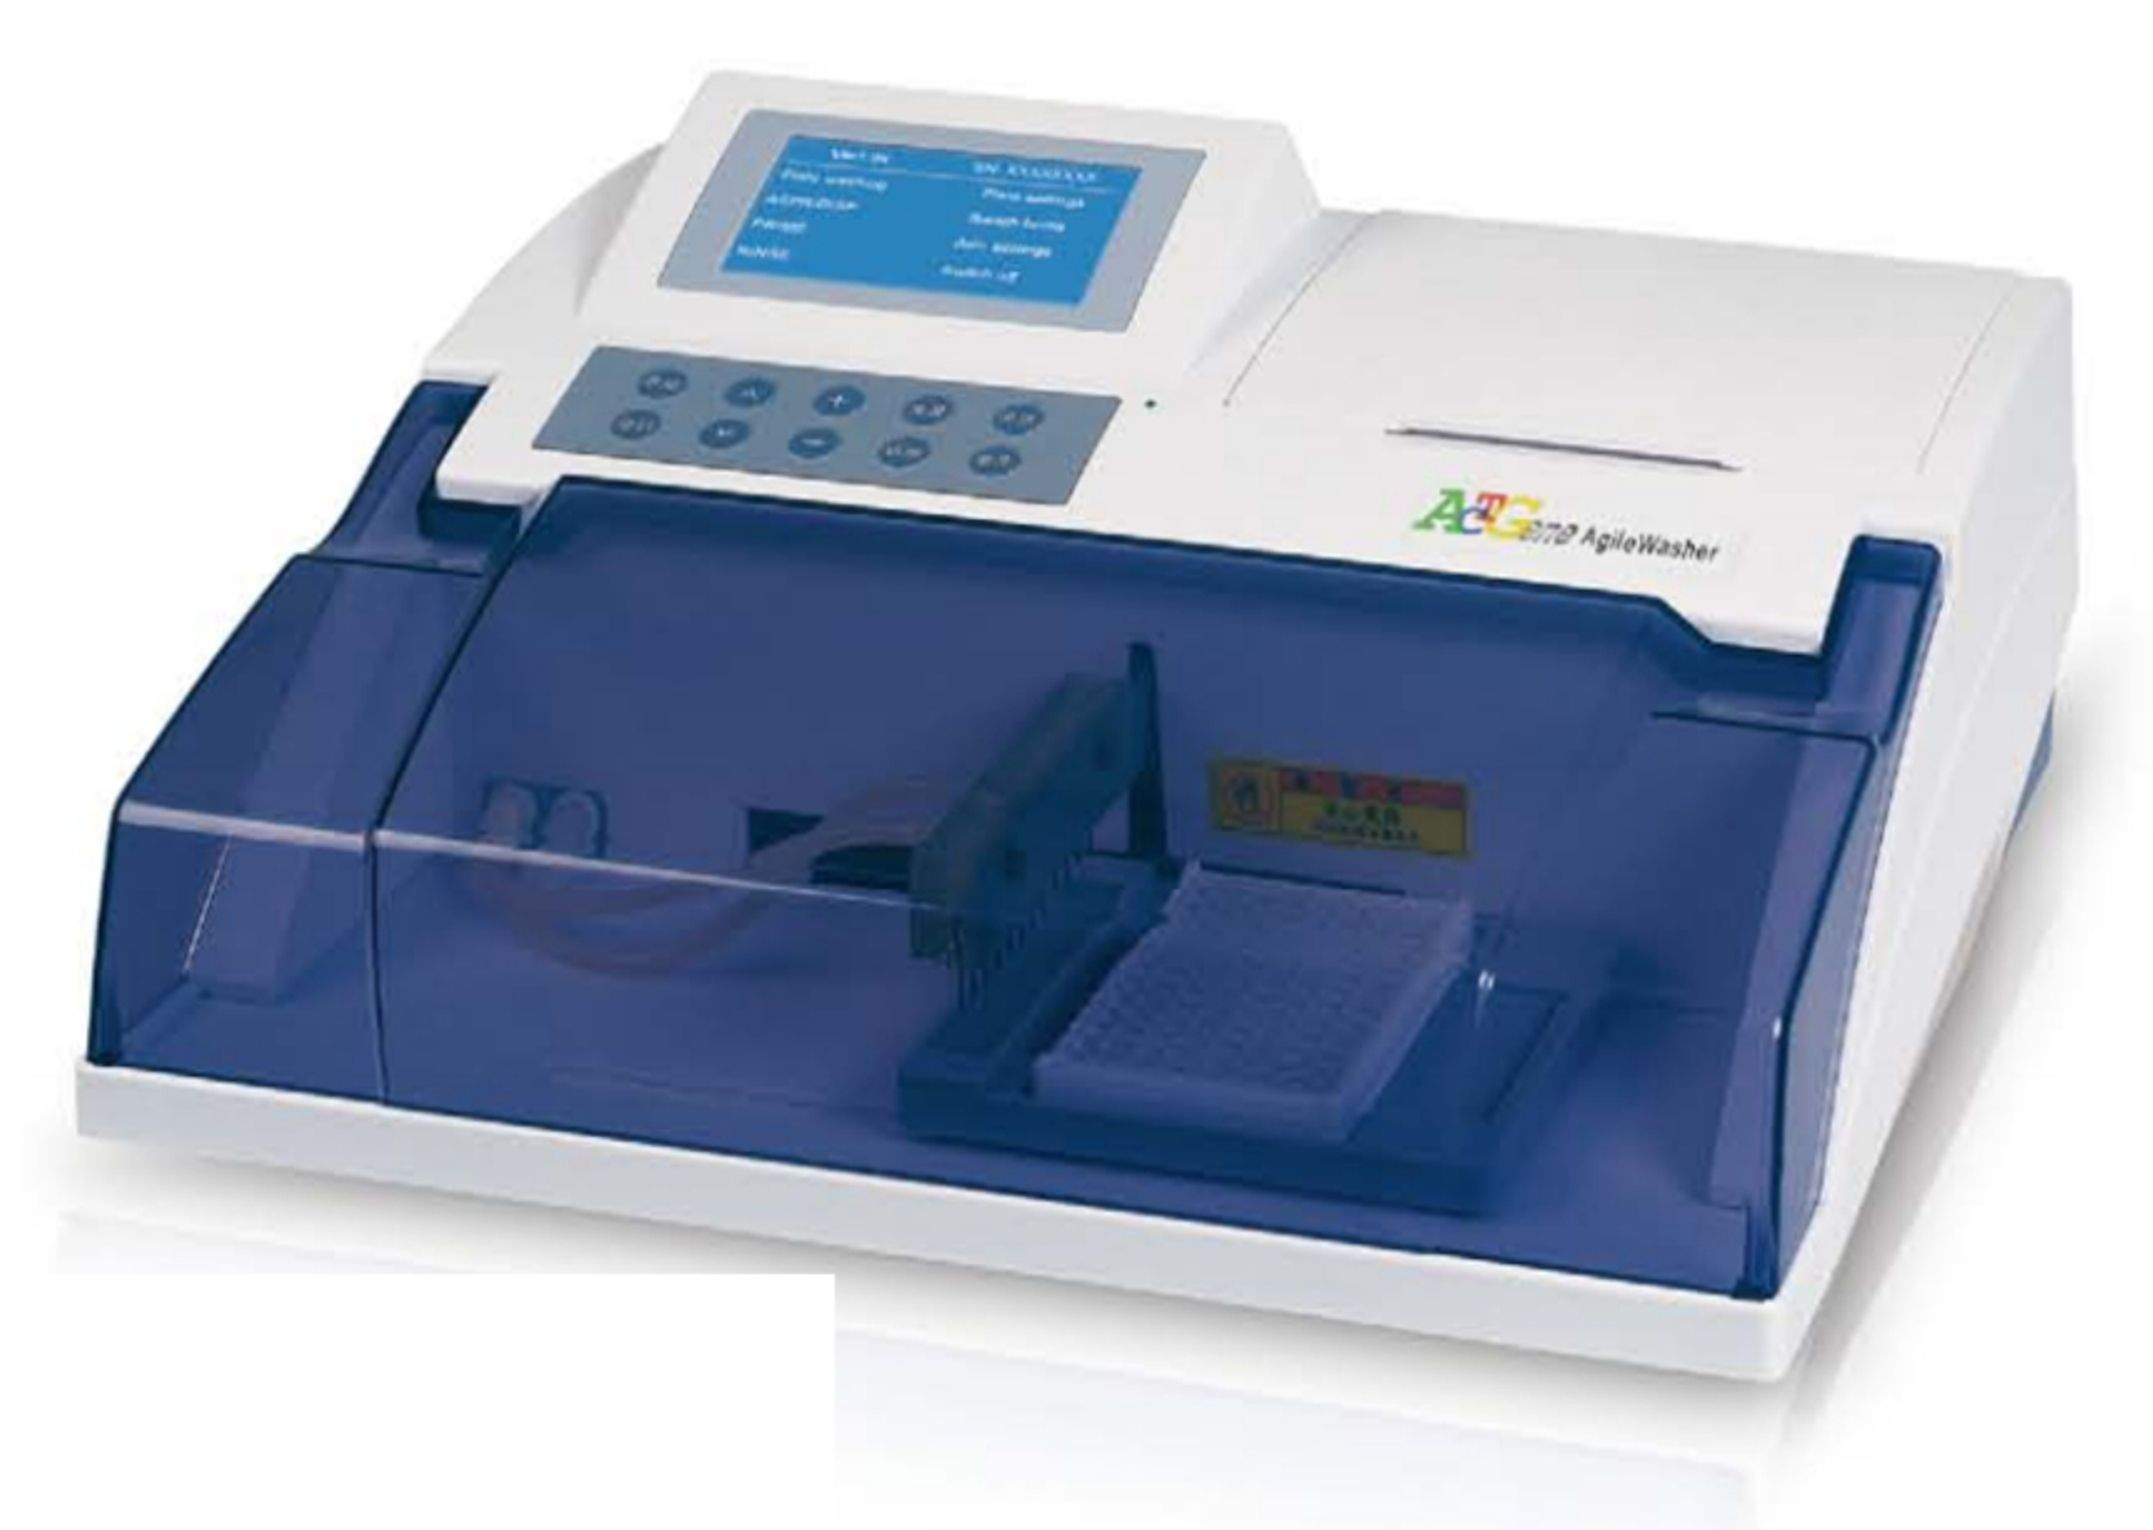 Microplate Washer Agilewasher Actgene 110 220 V Washer Laboratory Equipment Plates